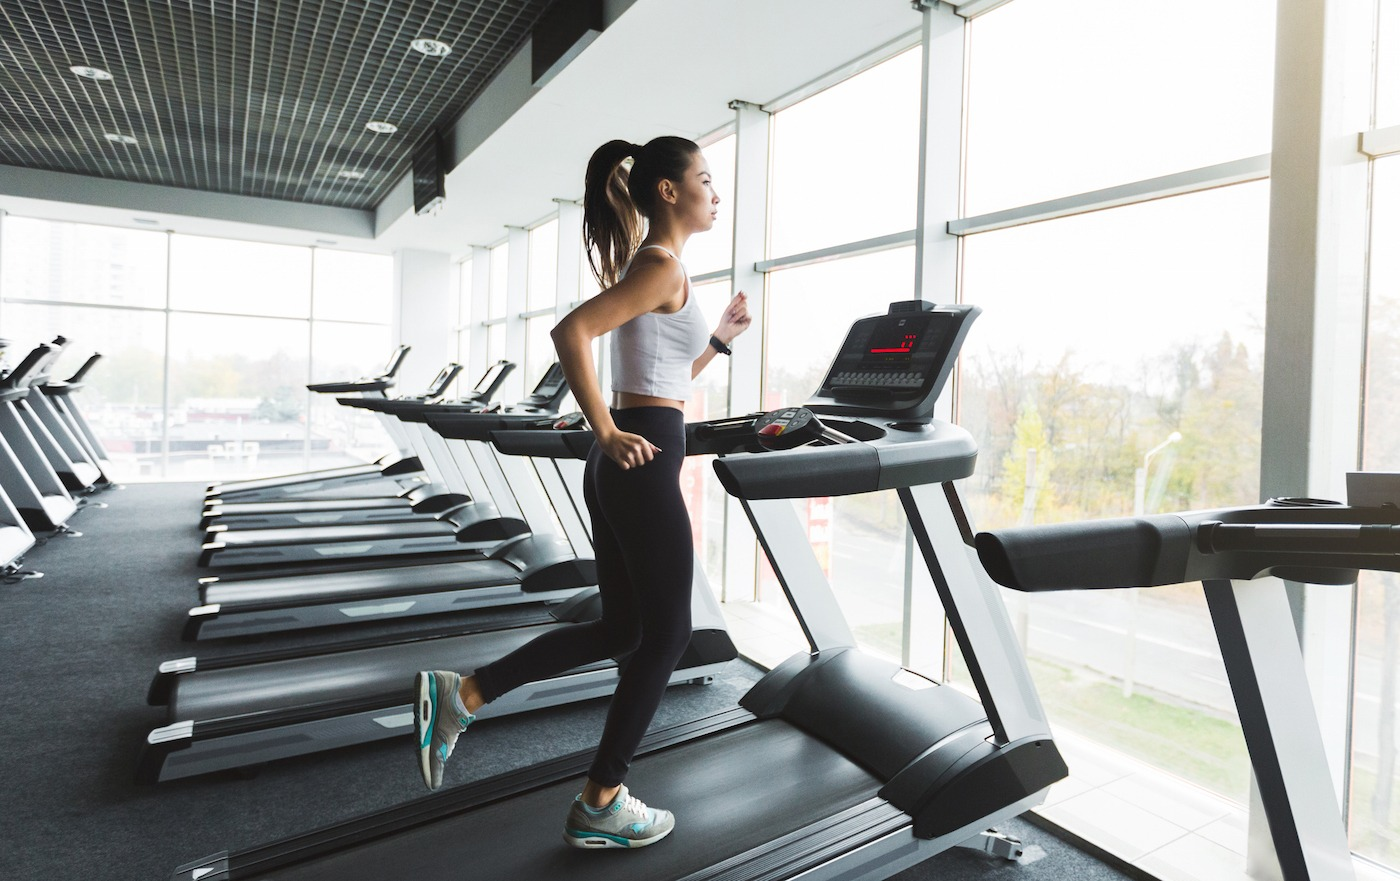 Thumbnail for Why fitness pros say the treadmill is the best way to get your run in